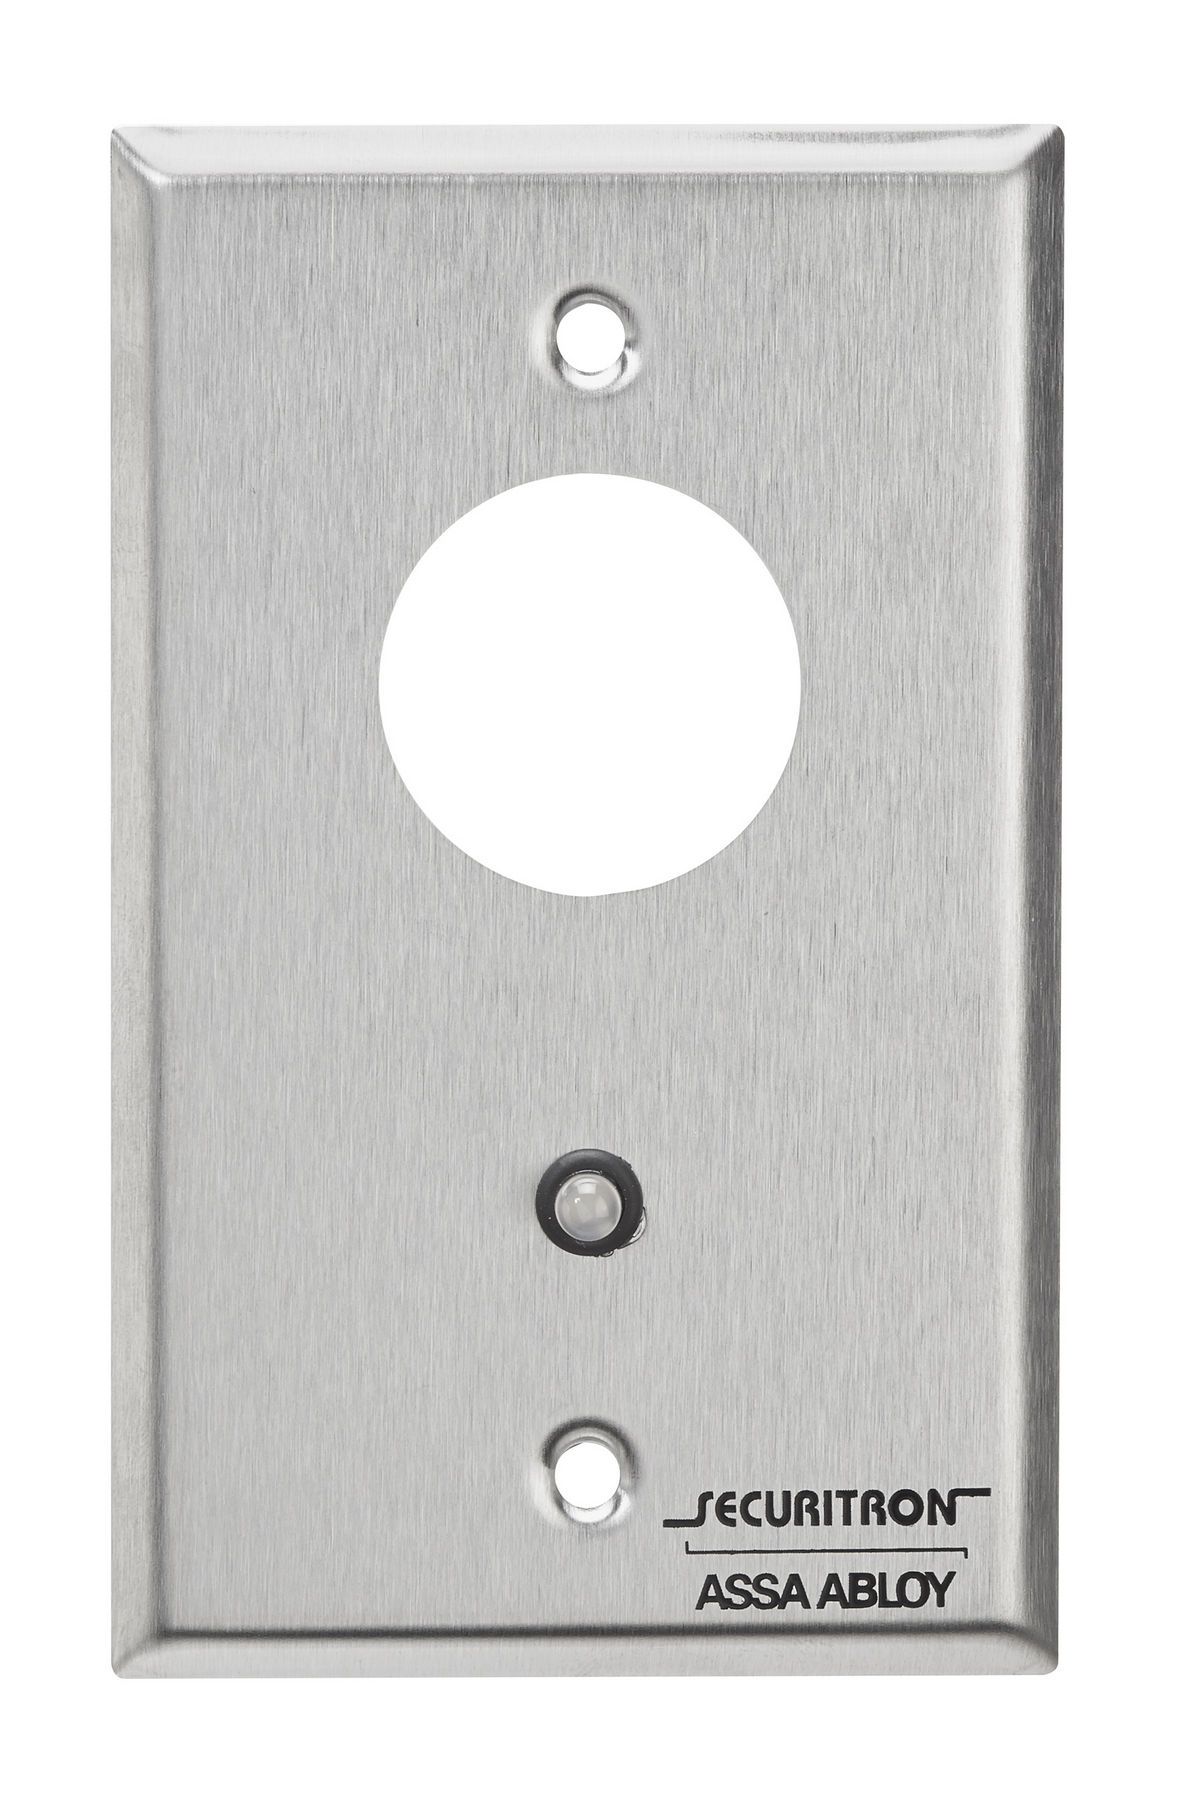 Securitron Mkapz Mortise Key Switch With Audible Alternate Double Assa Abloy Wiring Diagrams 37 Off